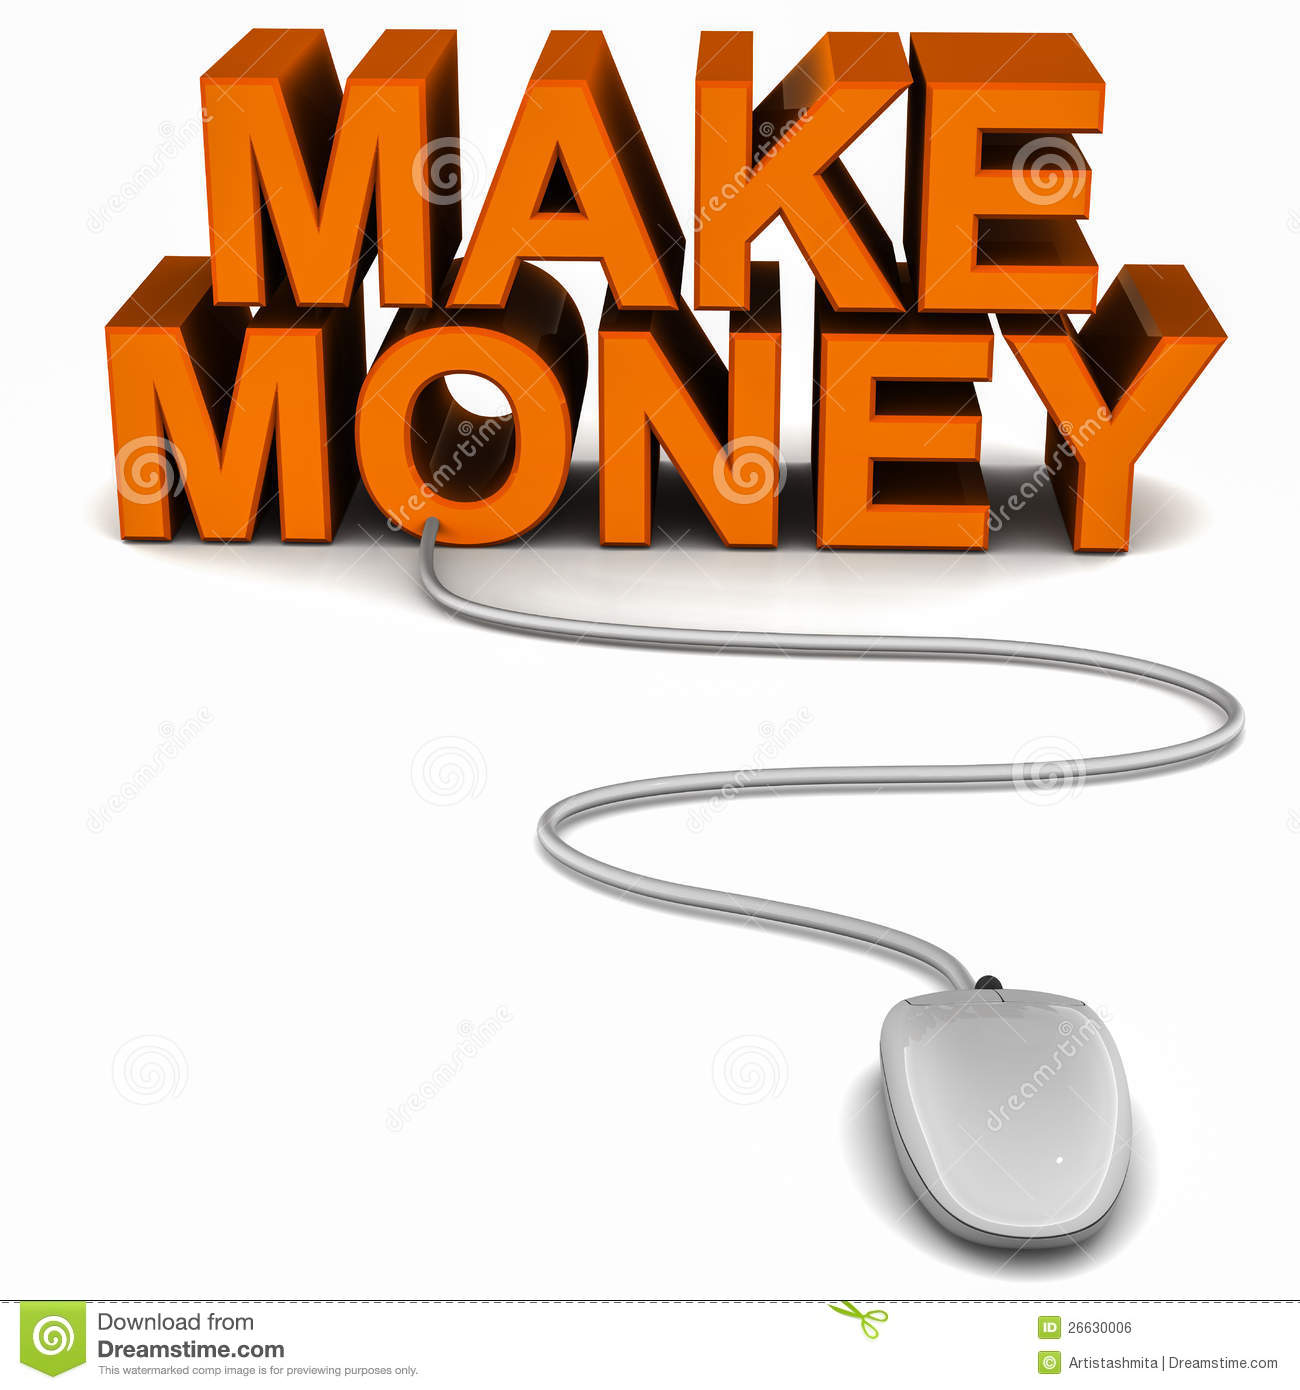 Download This Earn Online Make Money Through Inter Web Based Business  Picture